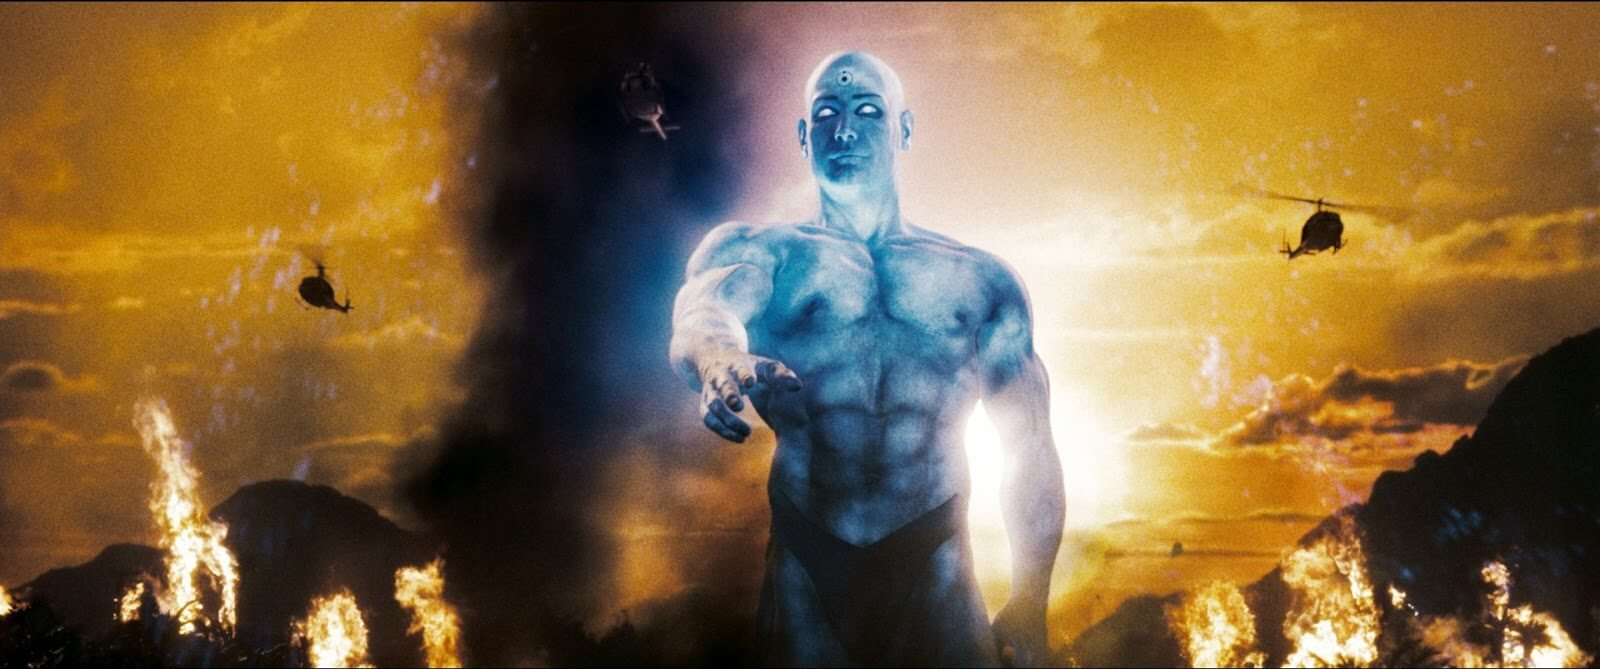 Directing Styles Zack Snyder Color Dr Manhattan